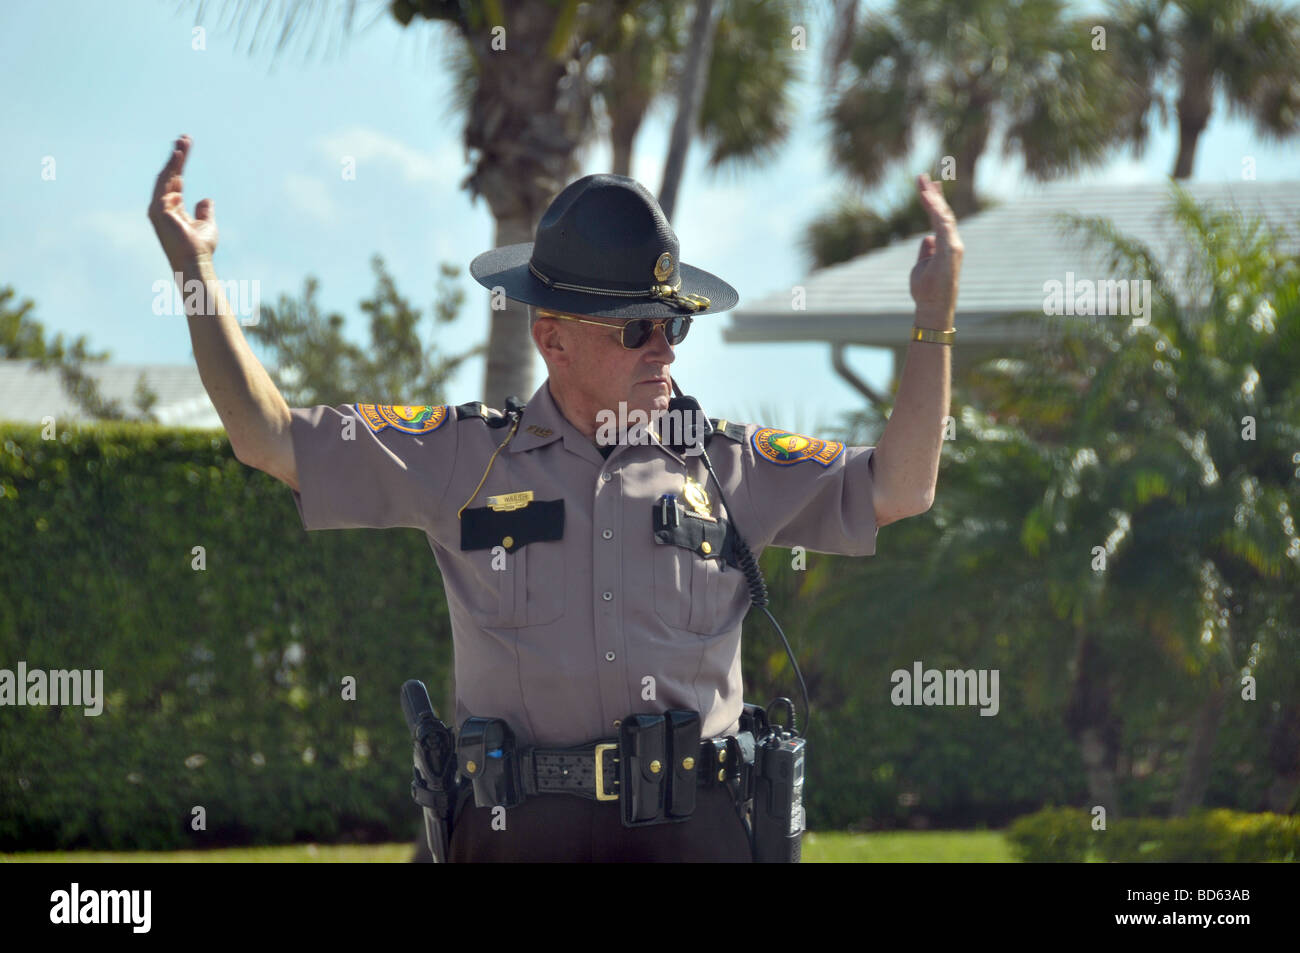 Florida Highway Patrol Traffic >> Florida Highway Patrol Directing Traffic At Accident Site Stock